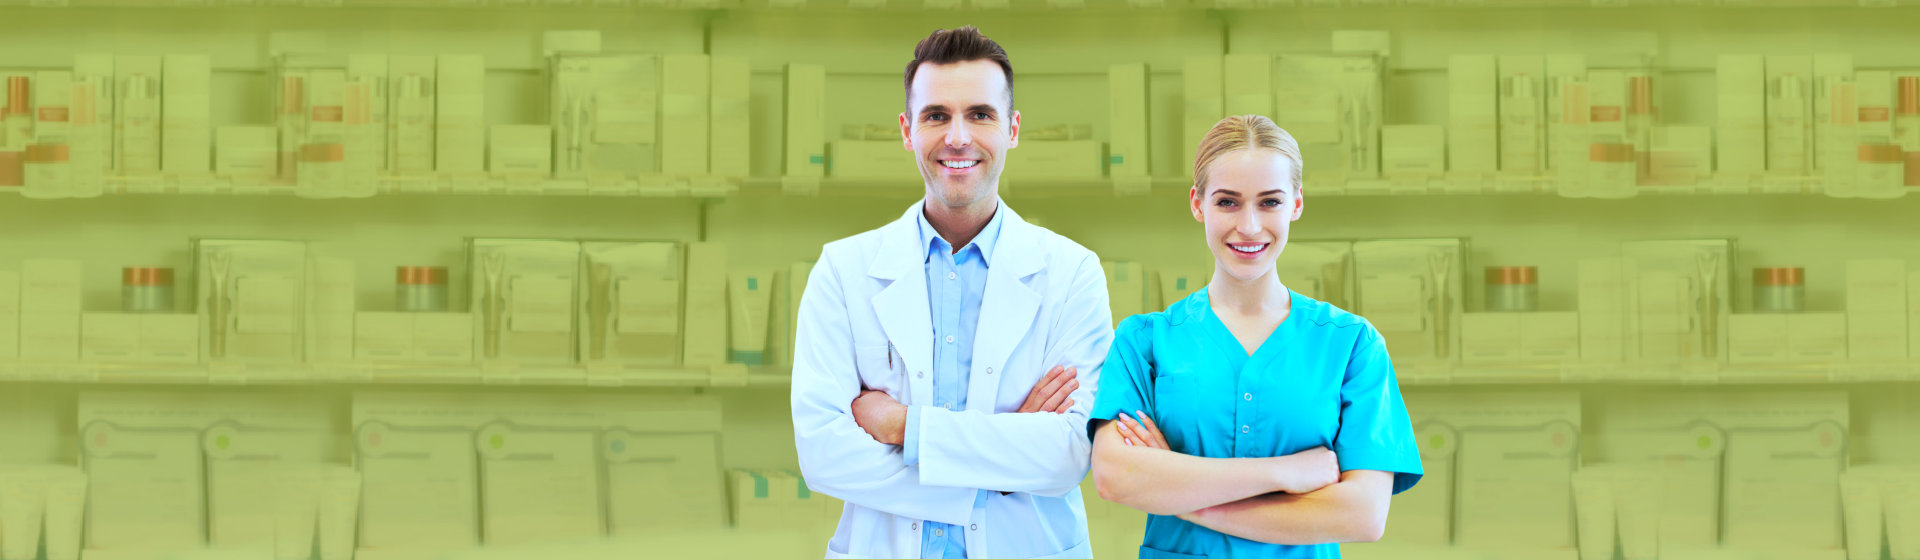 two pharmacist smiling